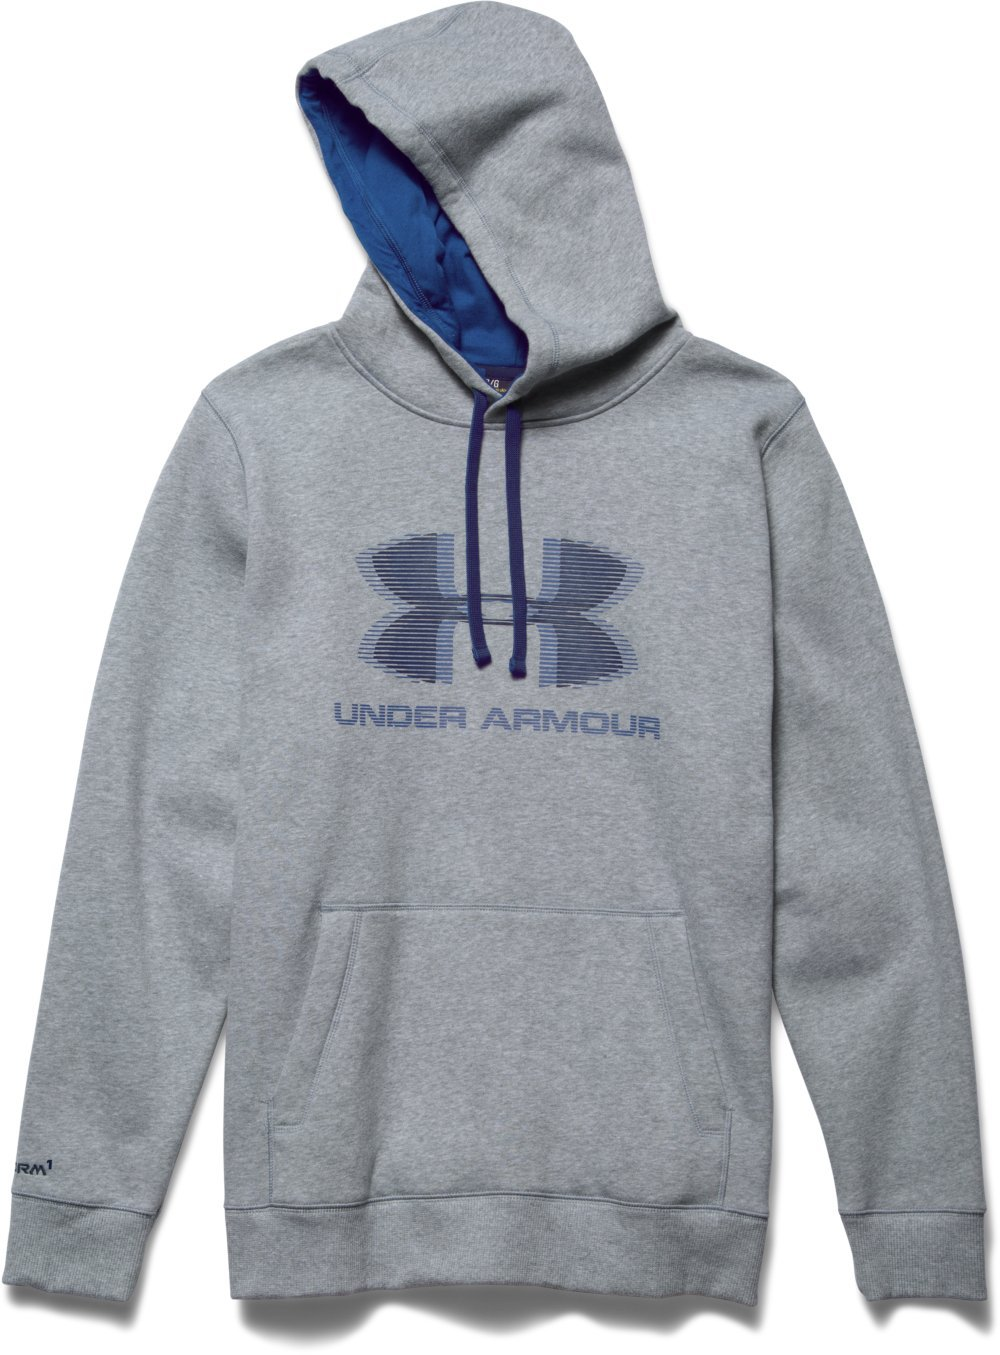 Under Armour Storm Rival Graphic Men's Hoodie